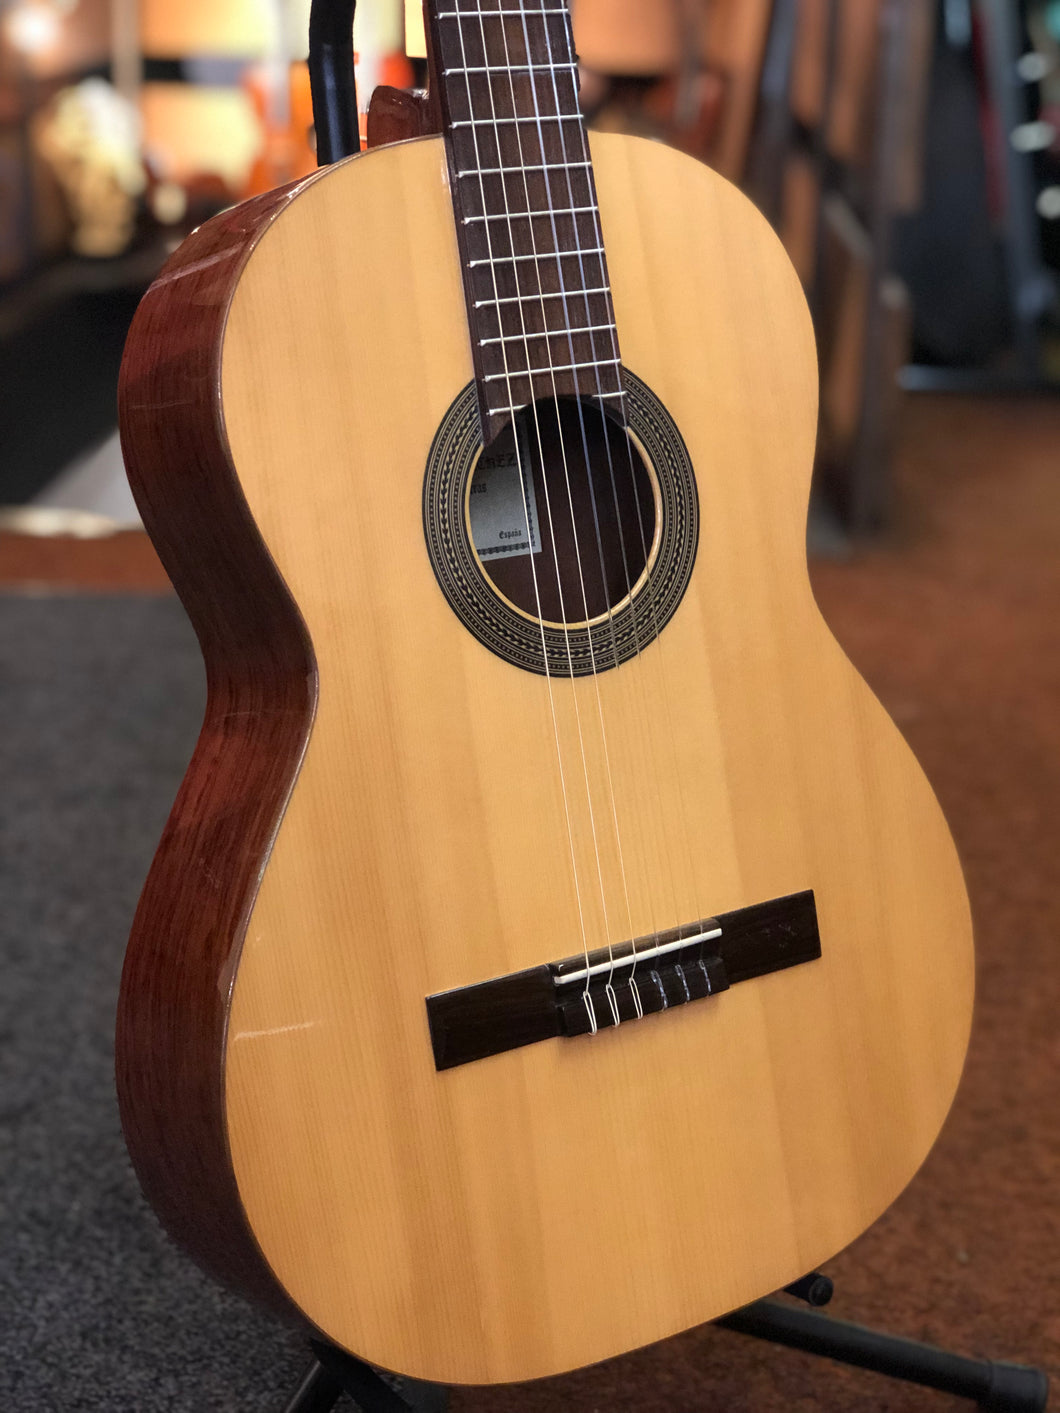 Antonio Sanchez - S20 Hand made Spanish Classical guitar Solid Pino Top - Varsity Music Shop